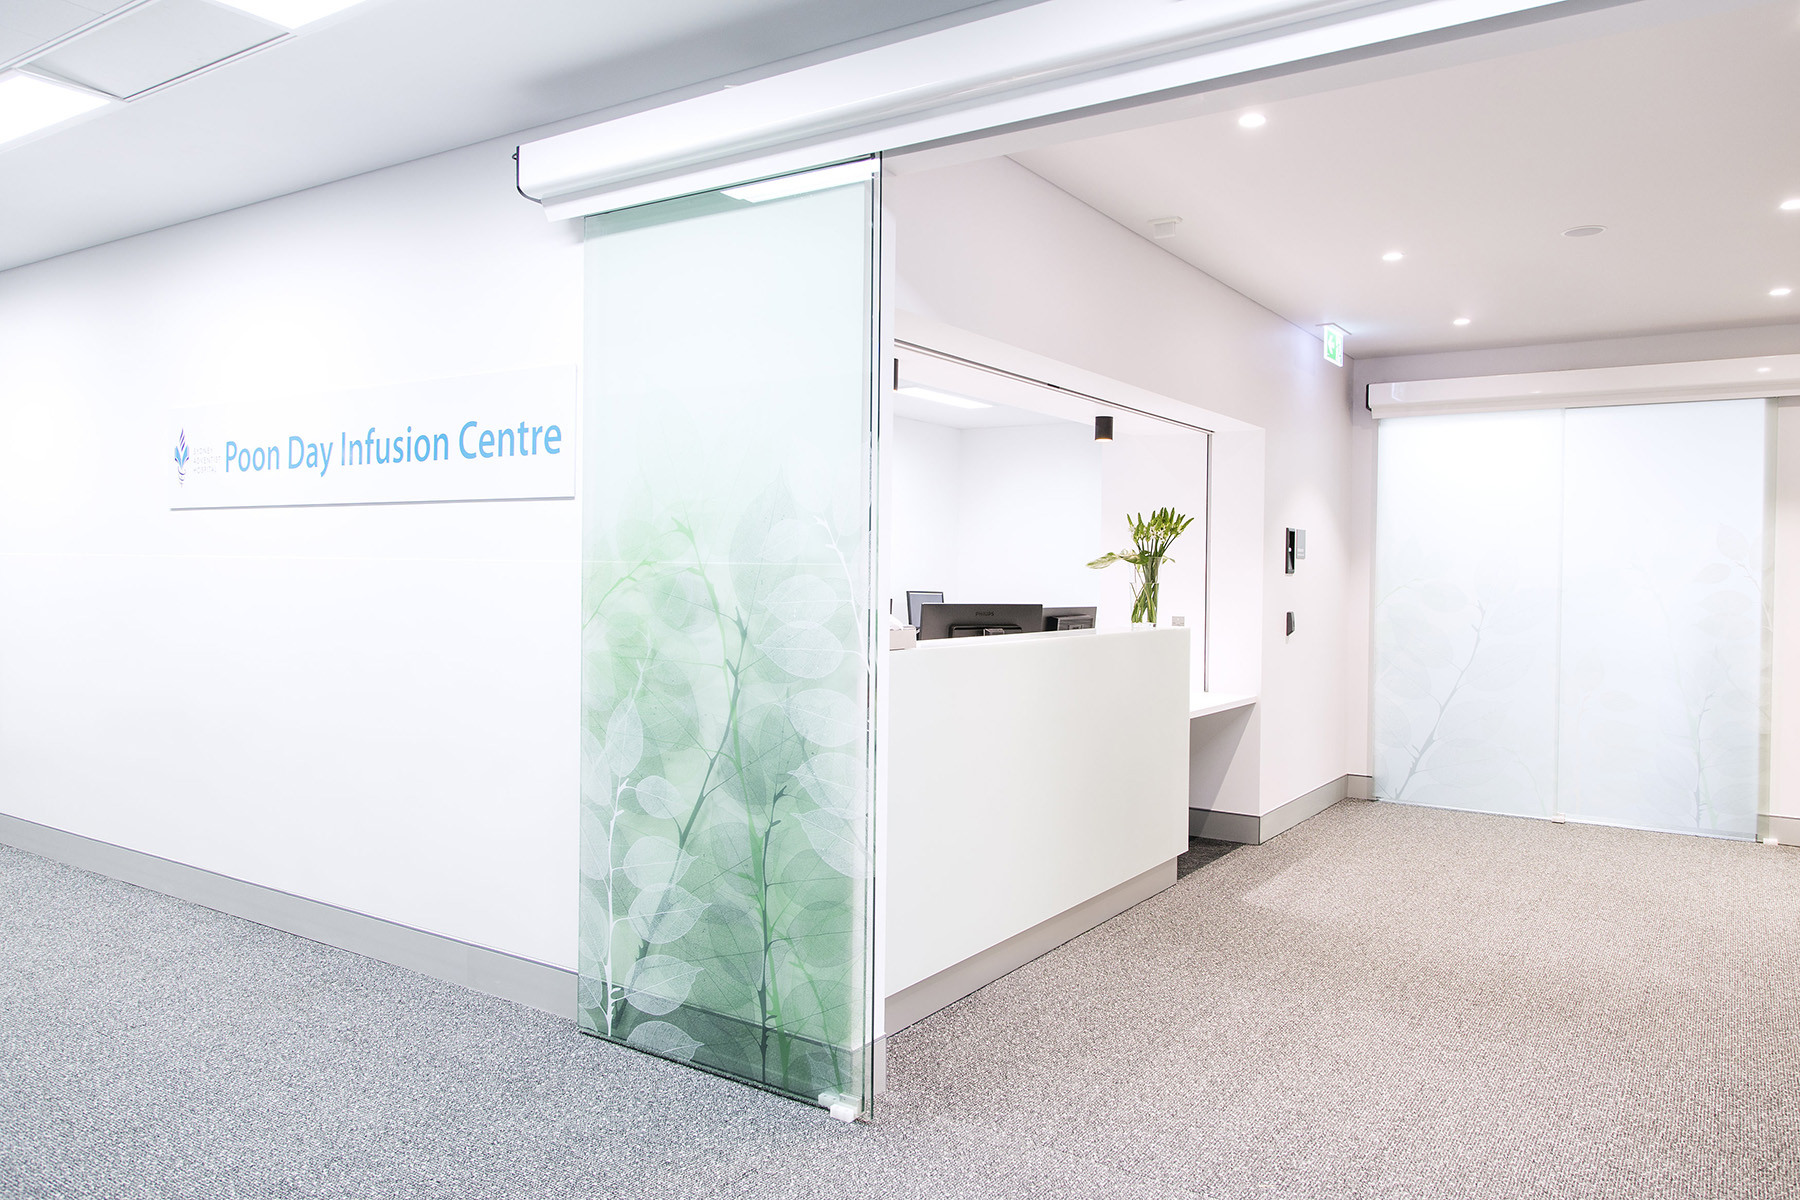 Sydney Adventist Day Infusion Centre